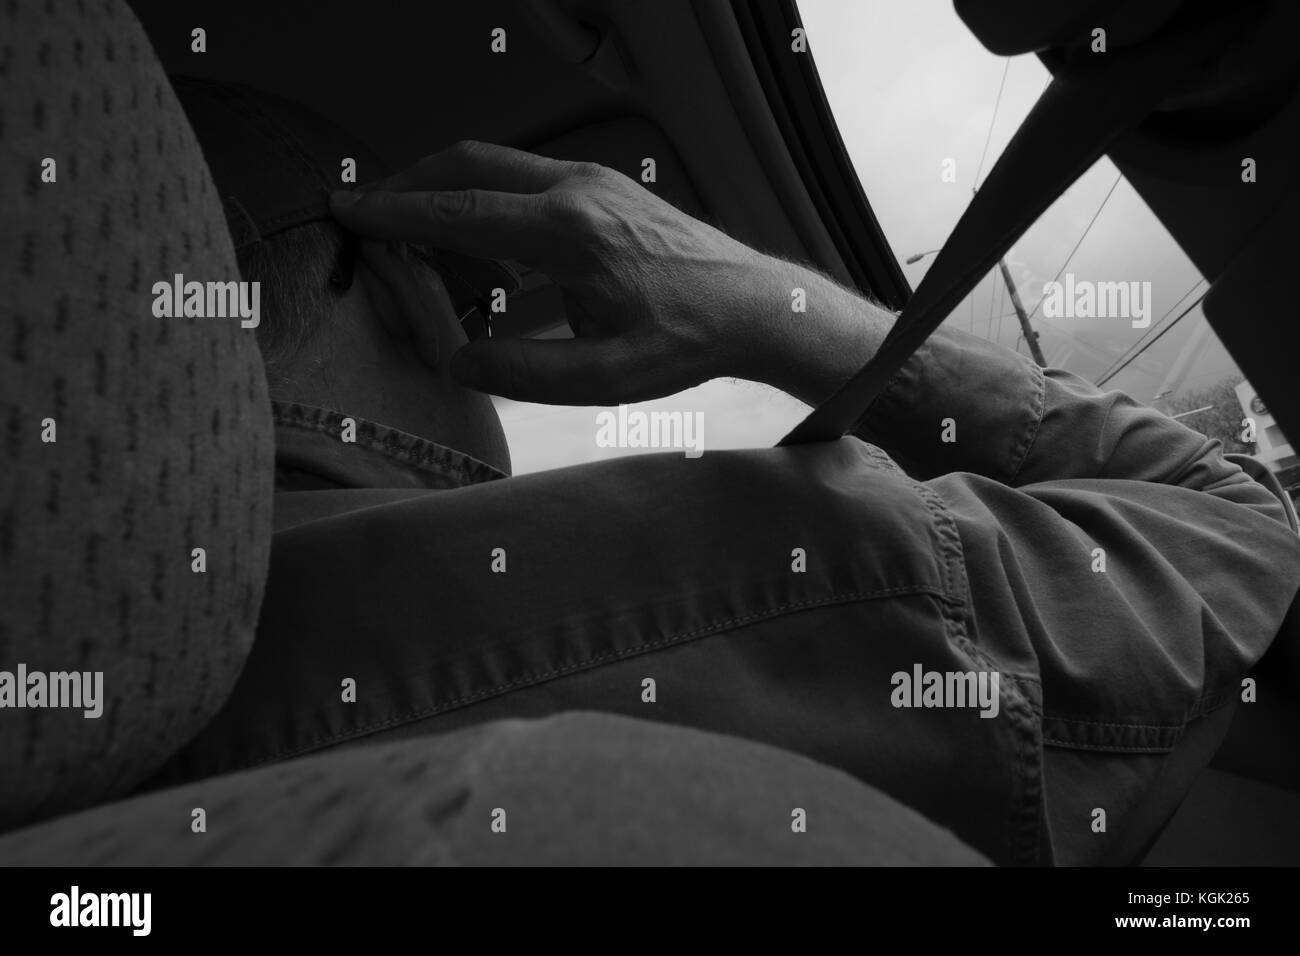 A man sits in his car, placing his hand next to his head in a pondering manner, contemplating on his thoughts. But - Stock Image